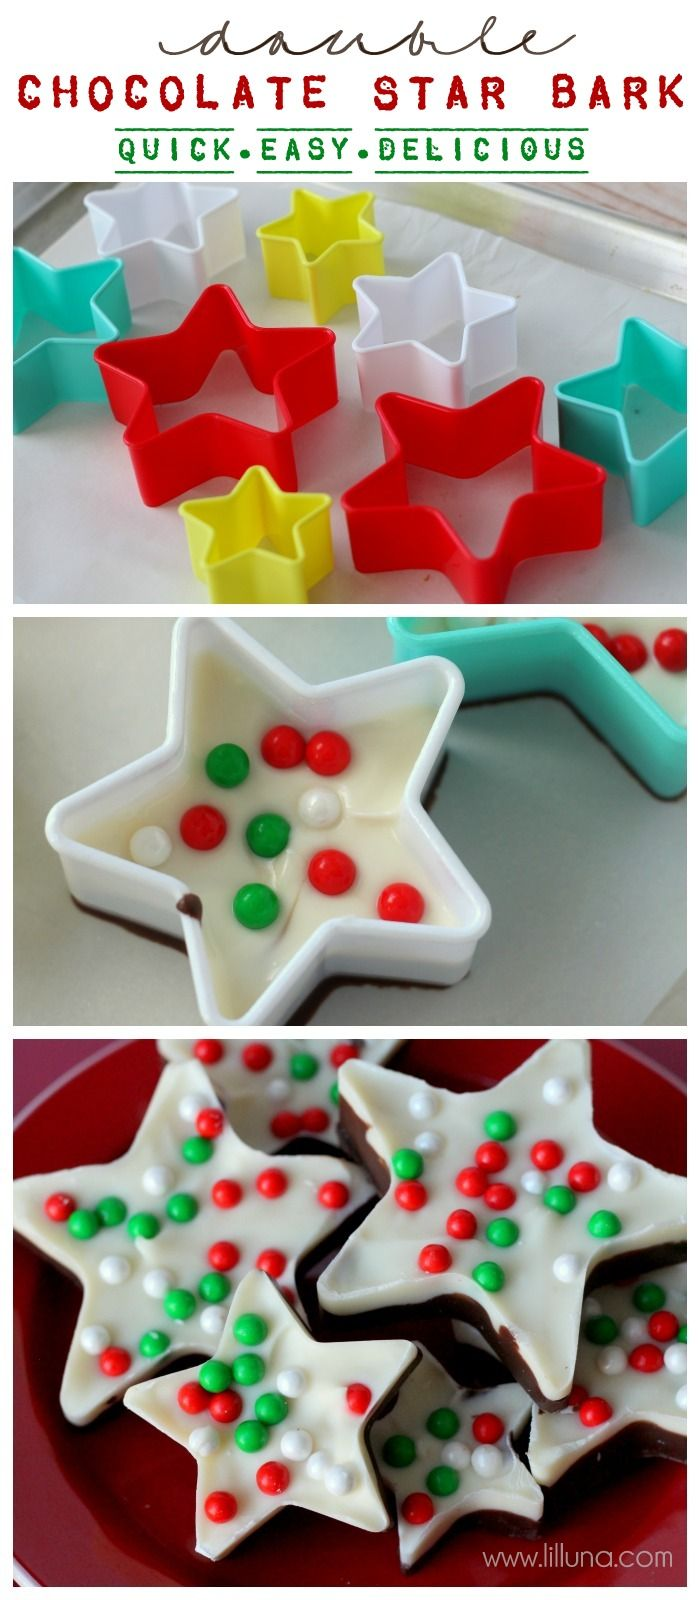 Double Chocolate Star Bark - fun and delicious! - fab idea for a Christmas present the children can make!